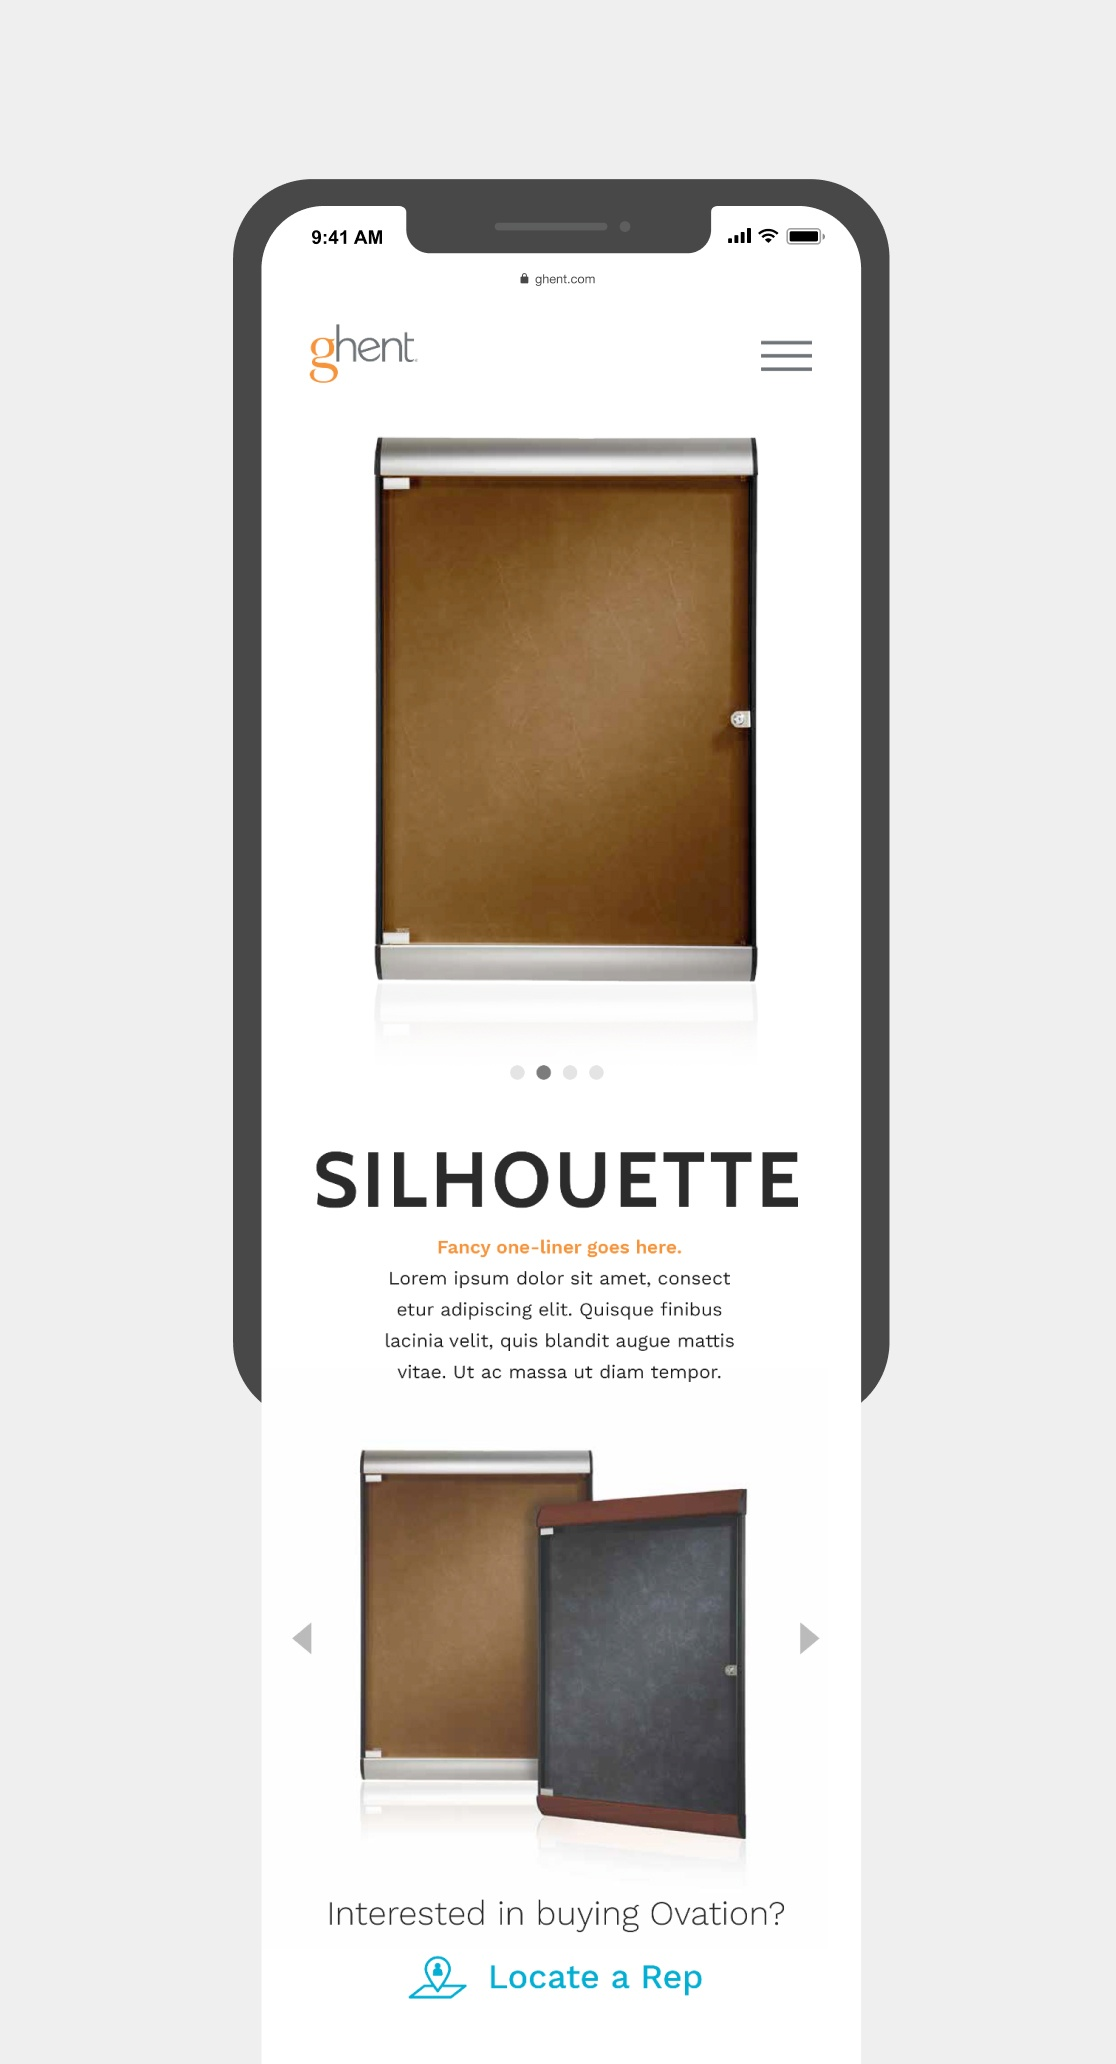 A mobile screenshot design of a product landing page for ghent.com